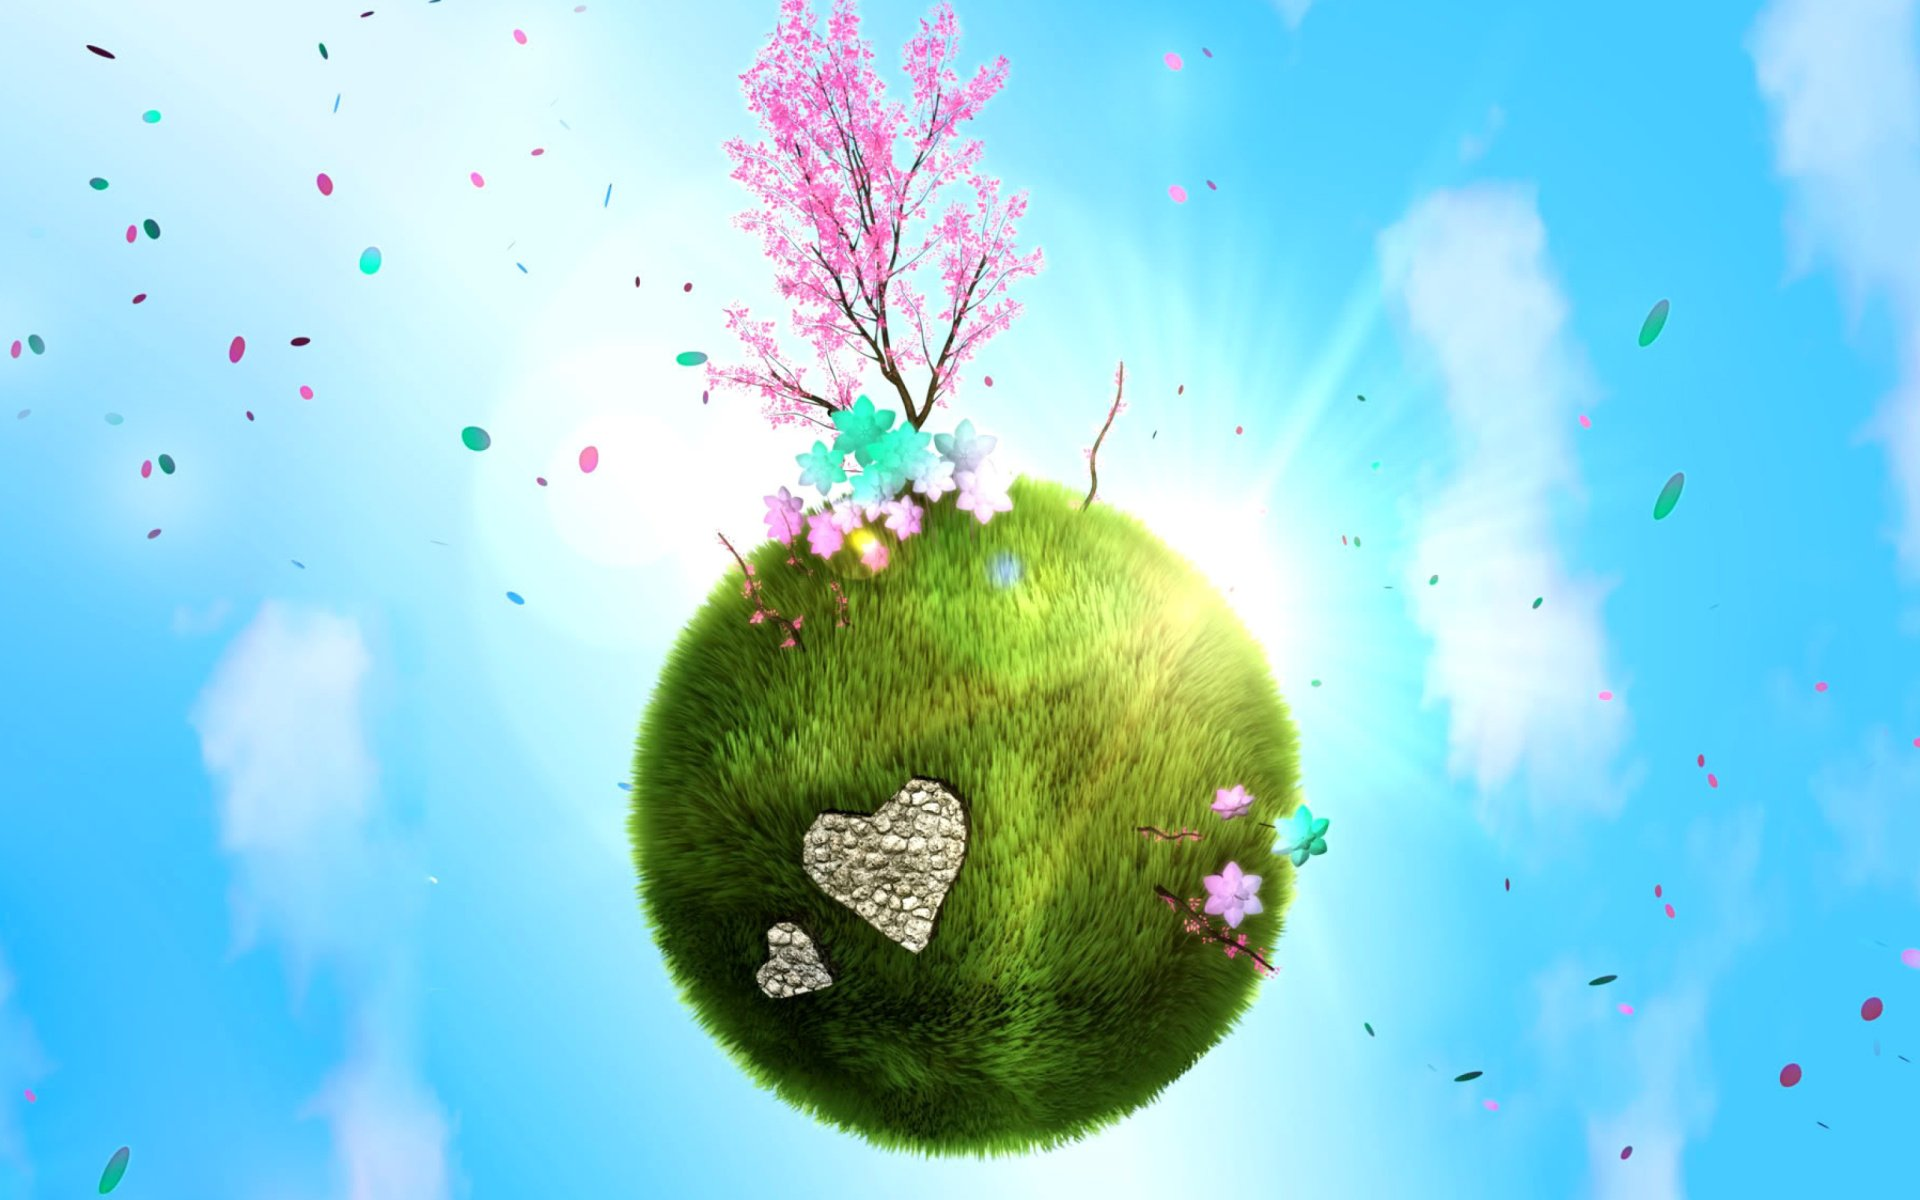 Holiday - Earth Day  Tree Flower Grass Artistic Holiday Wallpaper